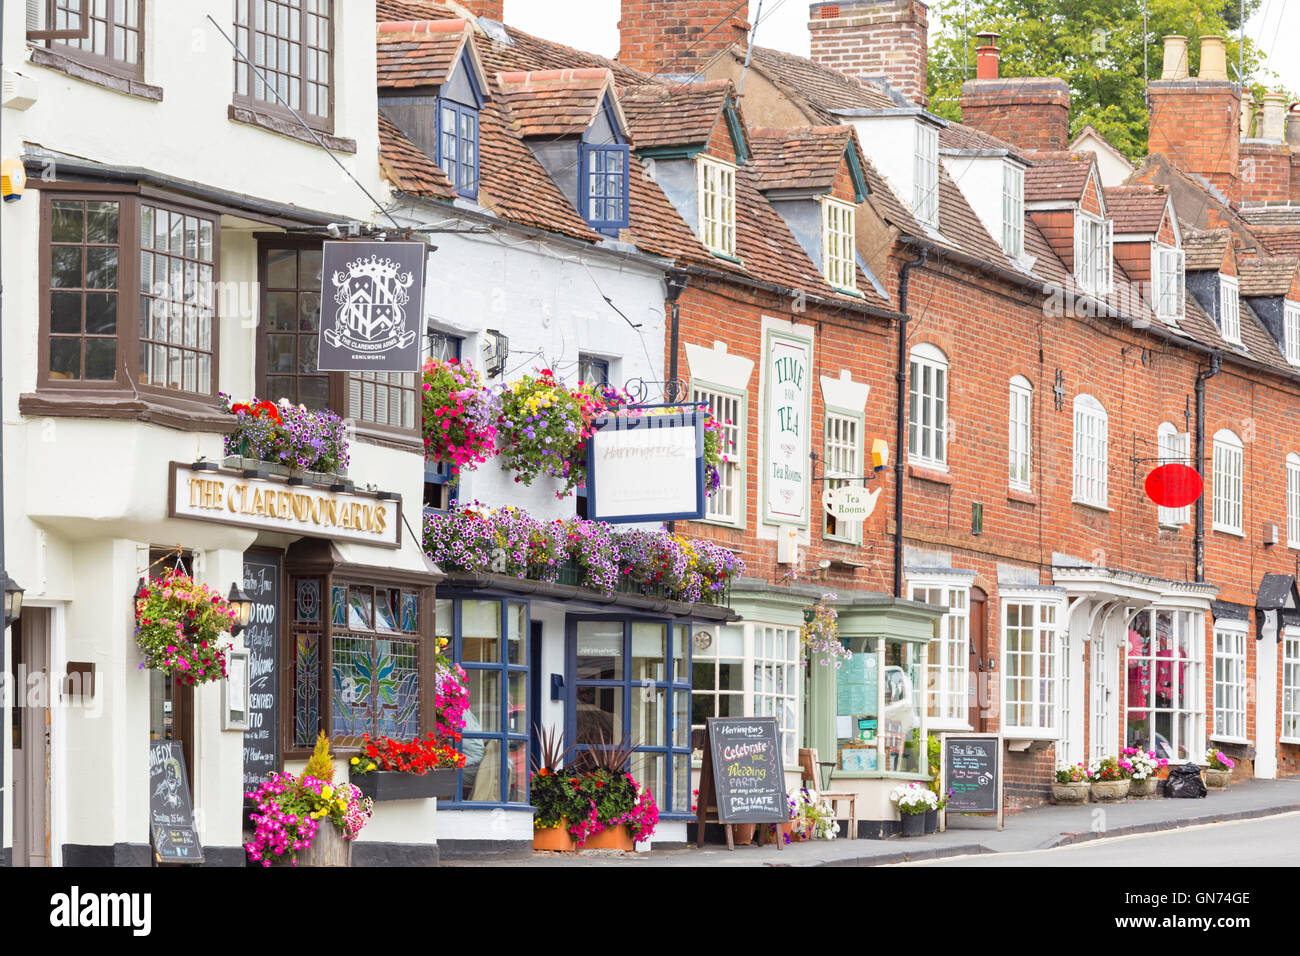 In Kenilworth Stock Photos Amp In Kenilworth Stock Images border=